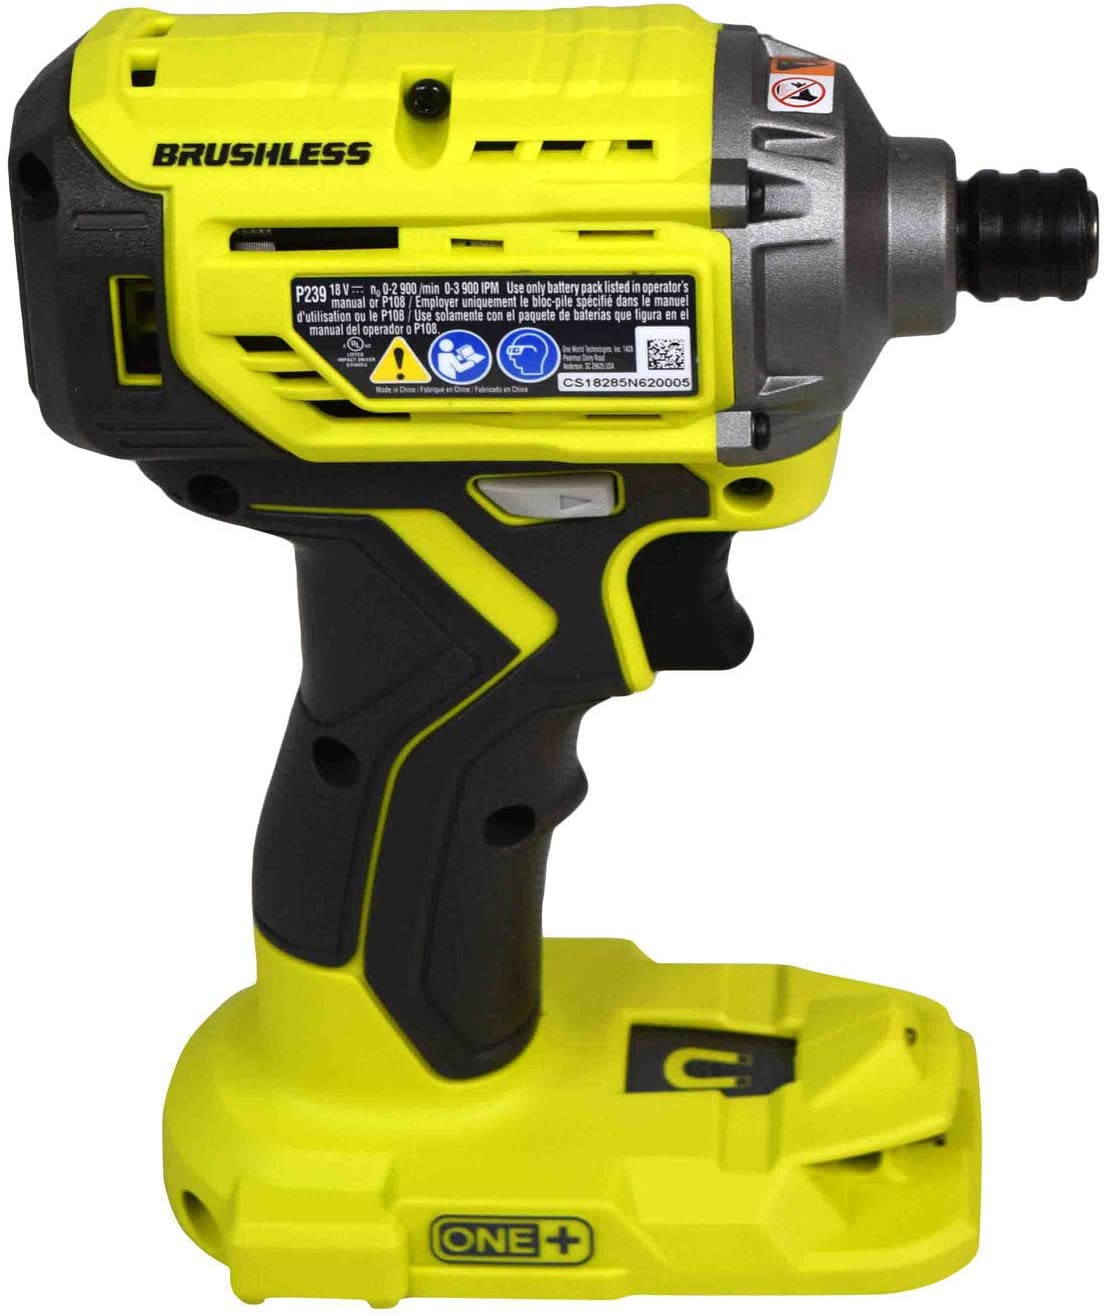 Ryobi P239 18V One Brushless Lithium-Ion Impact Driver Bare Tool Only Bulk Packaged